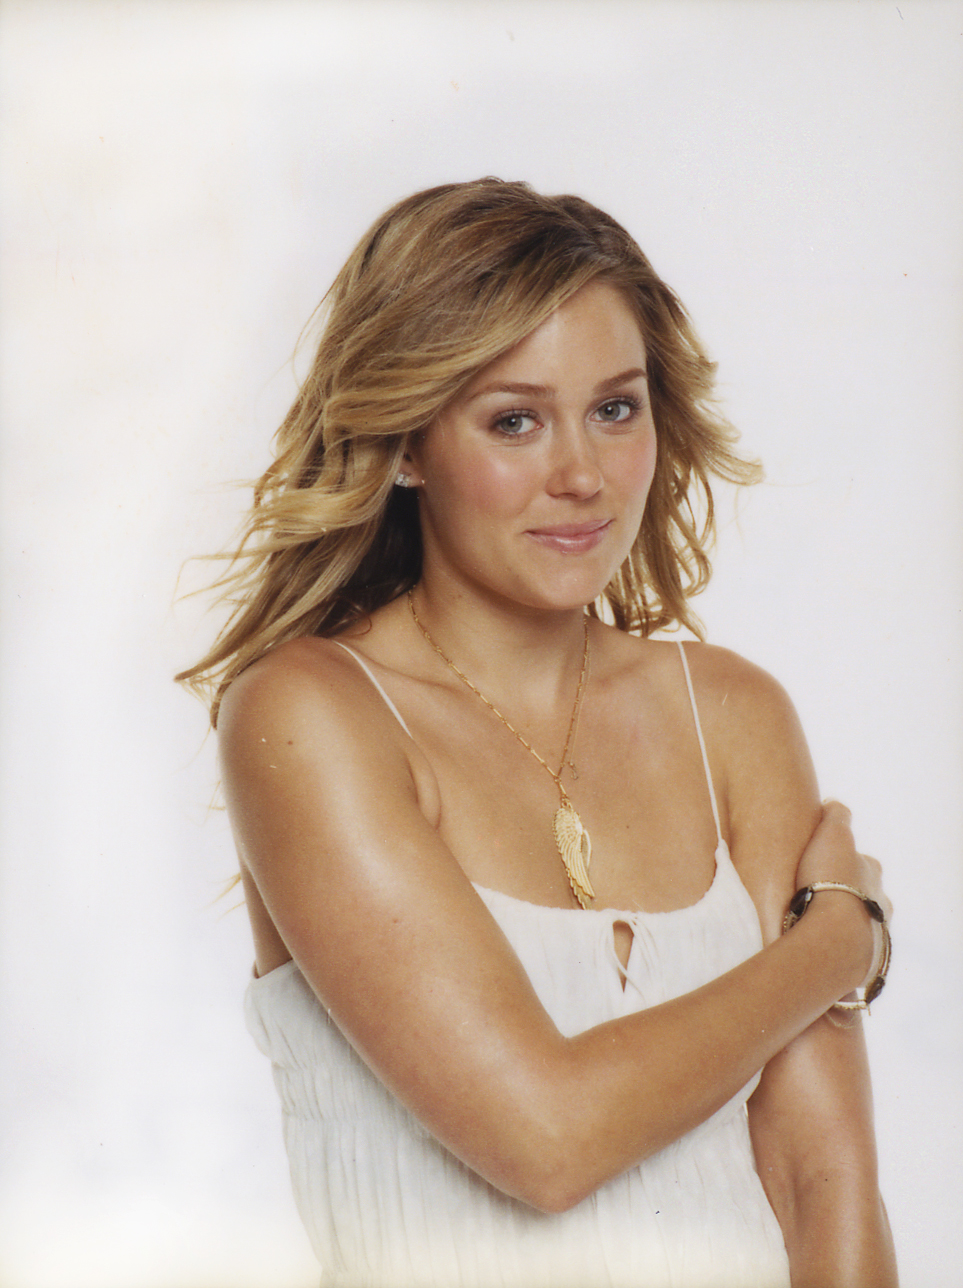 Sexy photo of lauren conrad